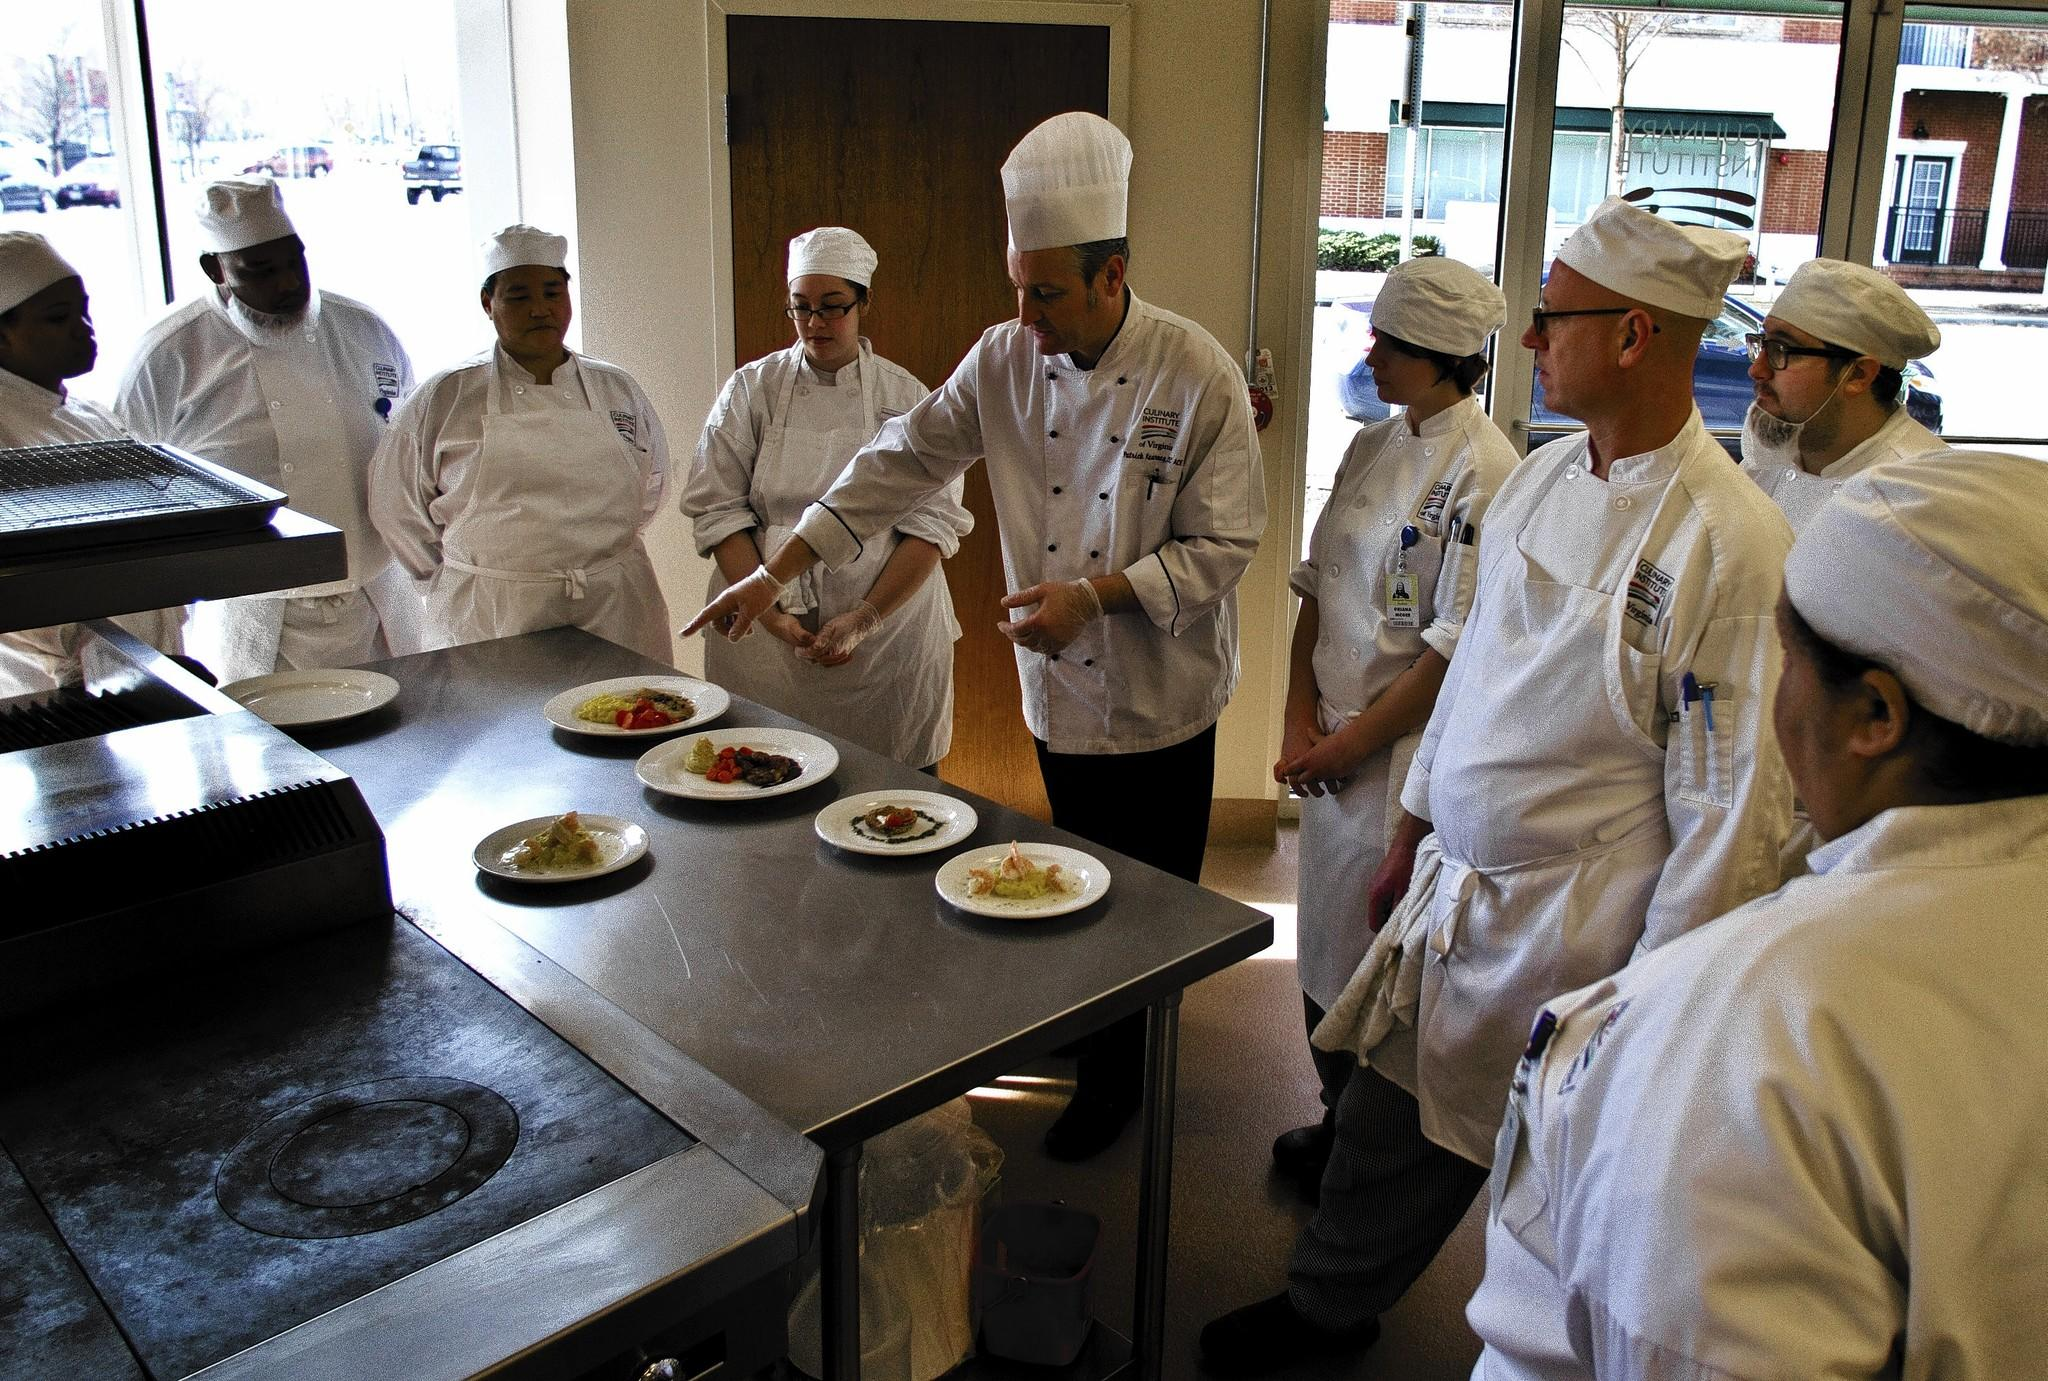 The Culinary Institute Of Virginia Opened A New Campus At Newport News City Center In The Fall